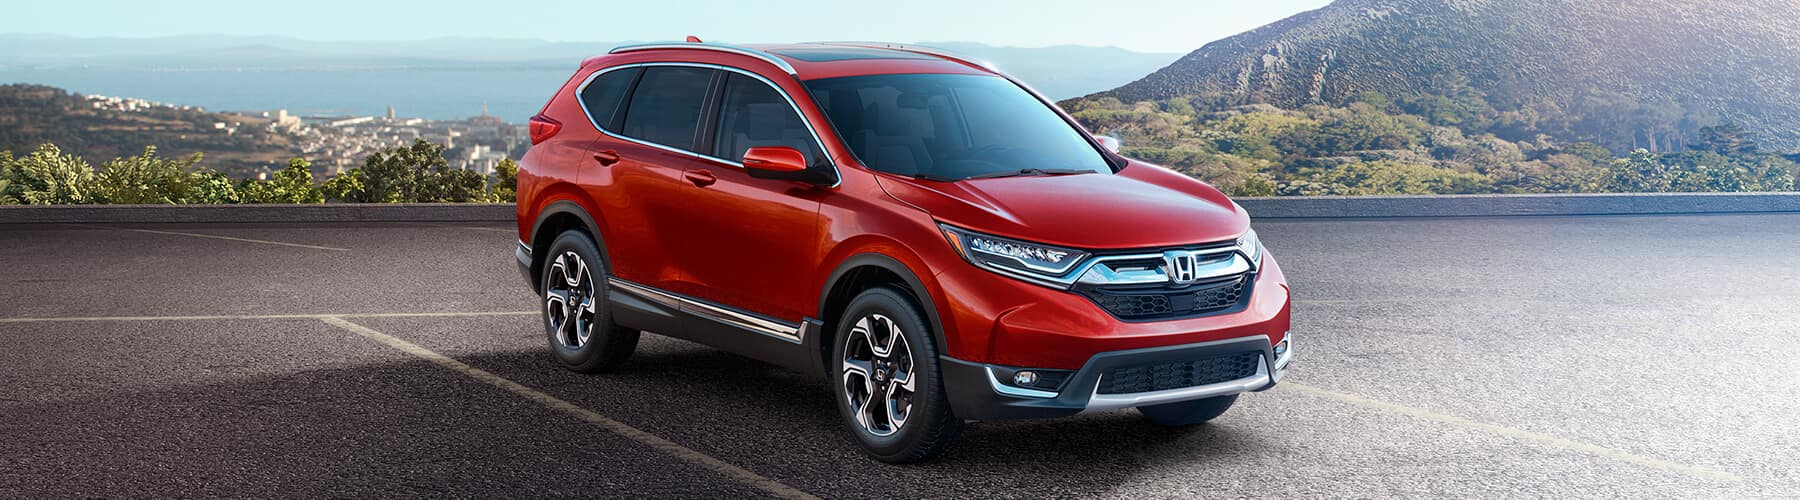 2019 Honda CR-V Slider